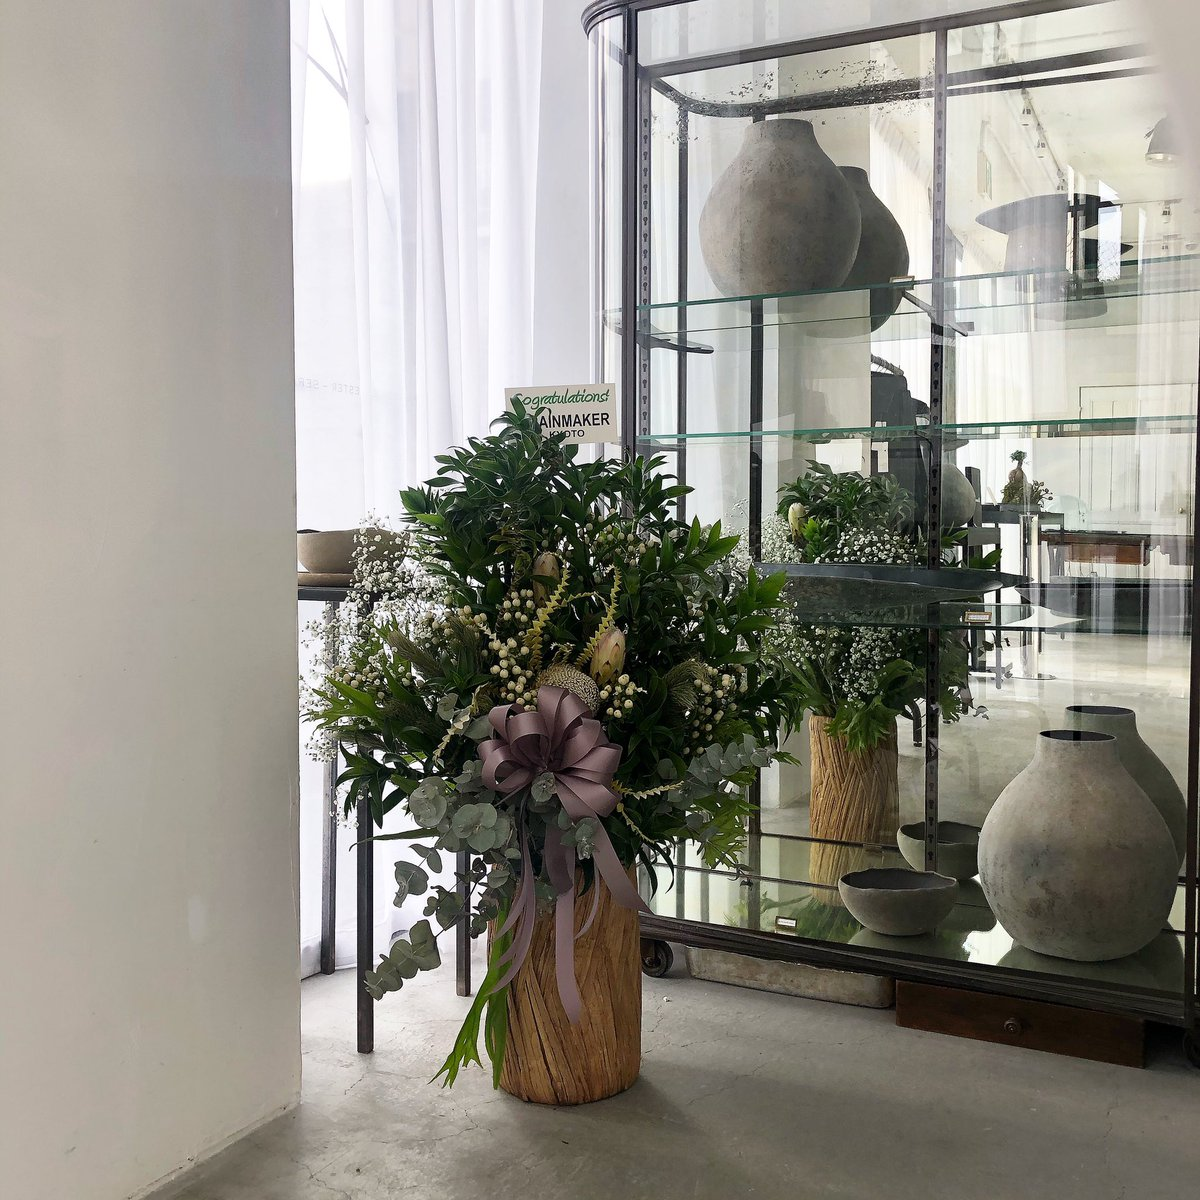 Newly opened flowers from  @RAINMAKER_KYOTO     #liftdaikanyama #art #fashion #flowers #iloveyou #flowerstagram #installation #gallery #rainmakerkyoto #kyoto #東京 #代官山